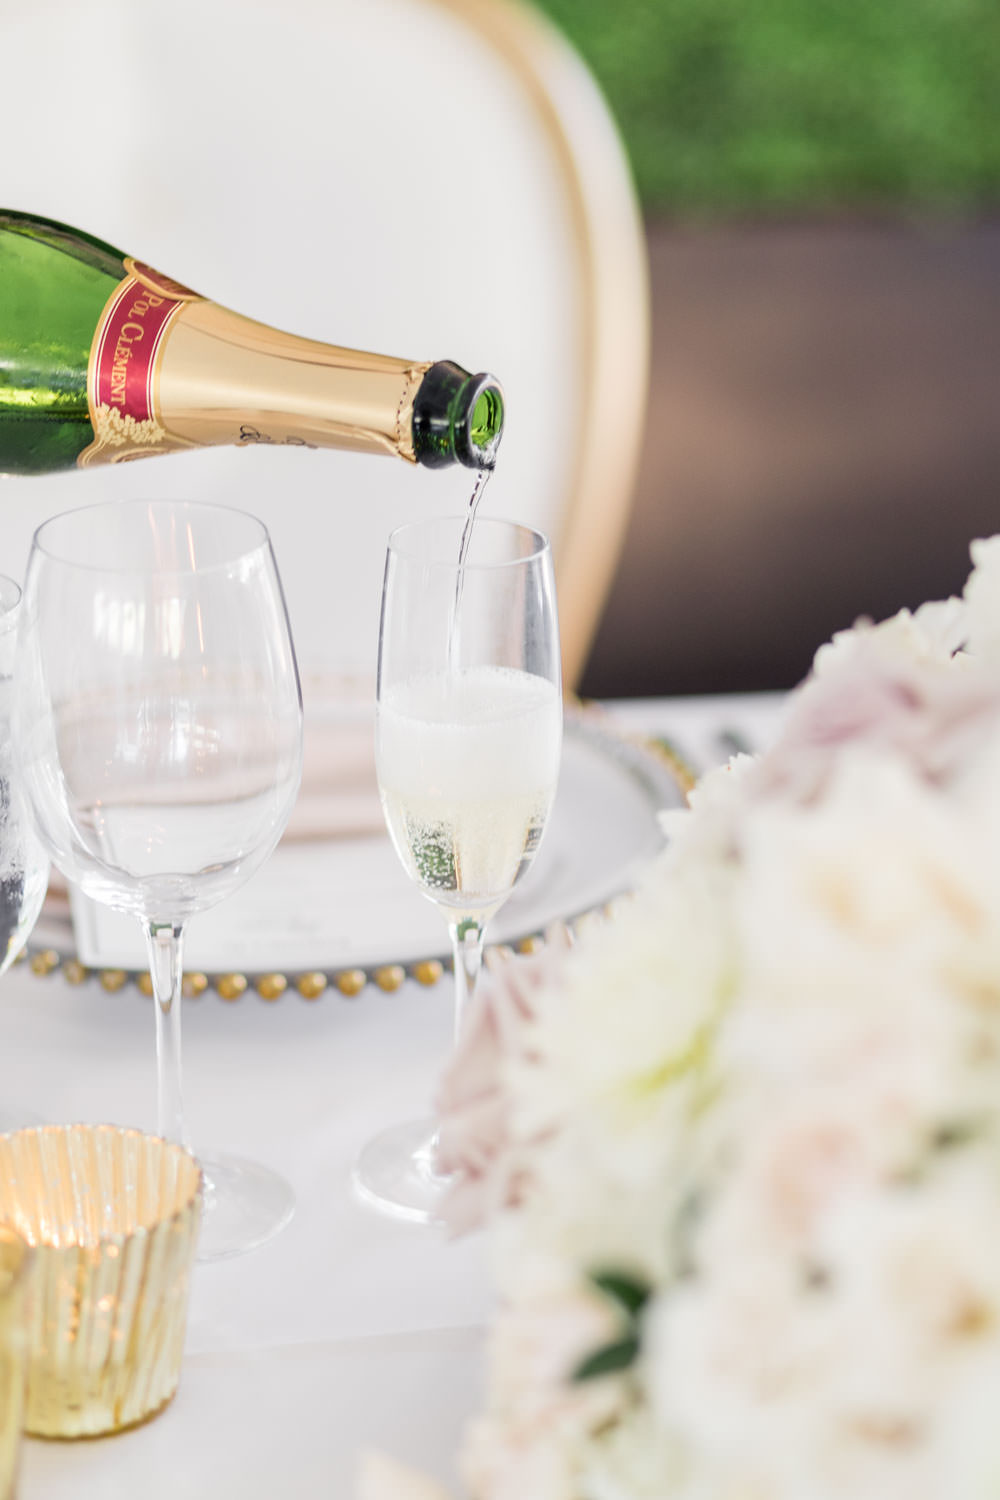 Champagne pouring into champagne glass, Cavin Elizabeth Photography